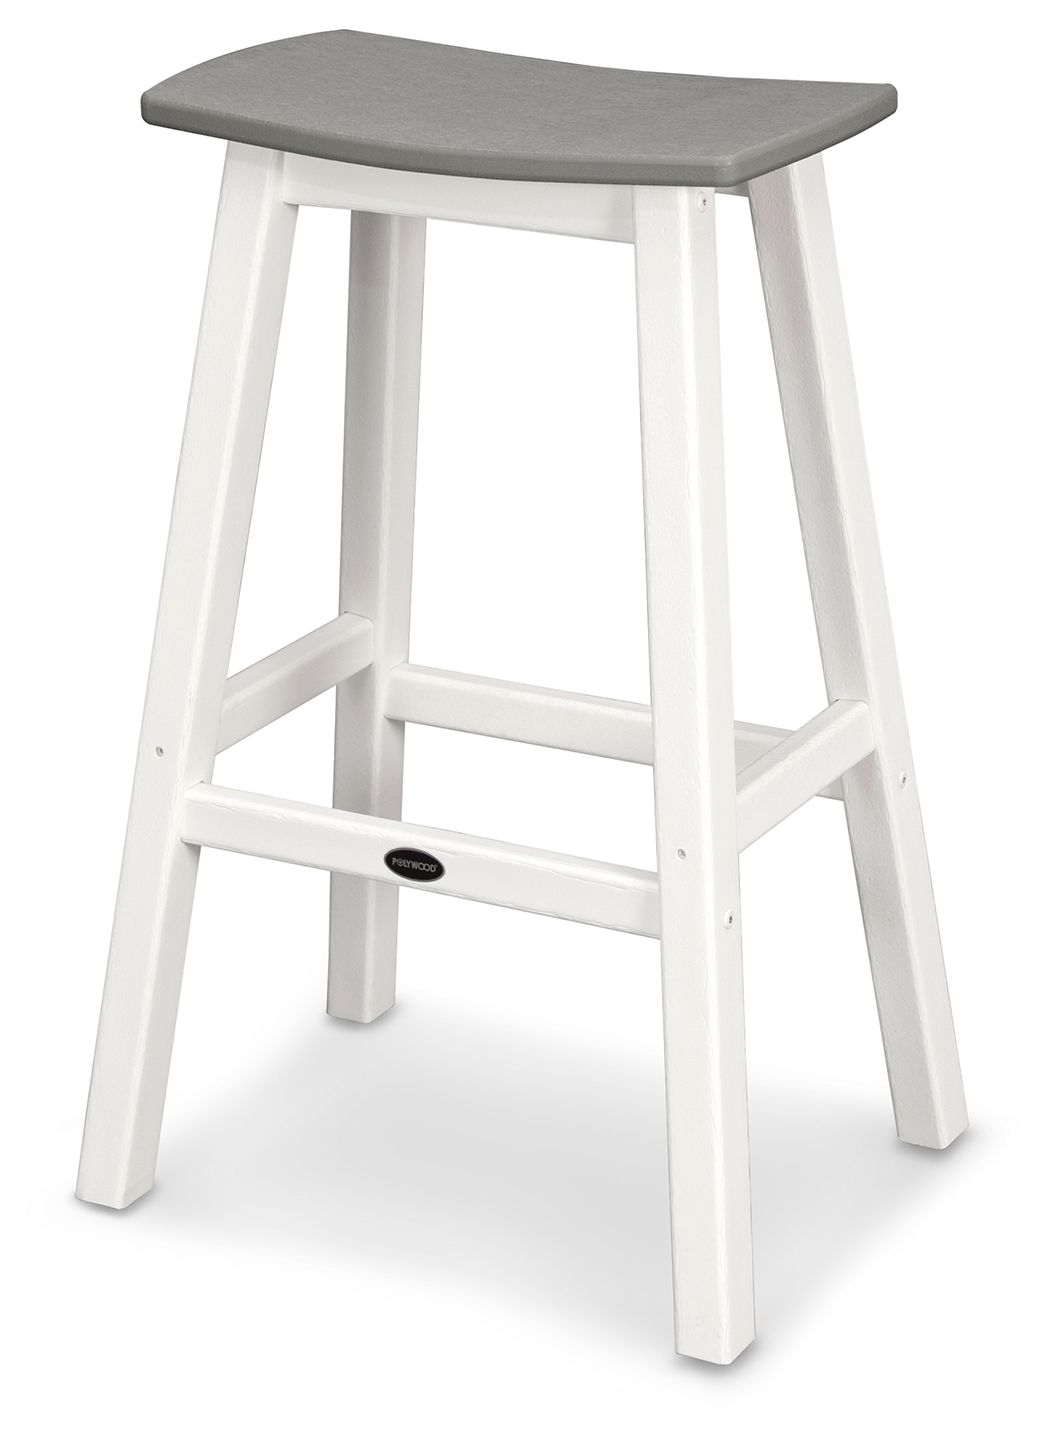 Polywood Emerson All Weather Bar Stool Set Of 2 White Gray